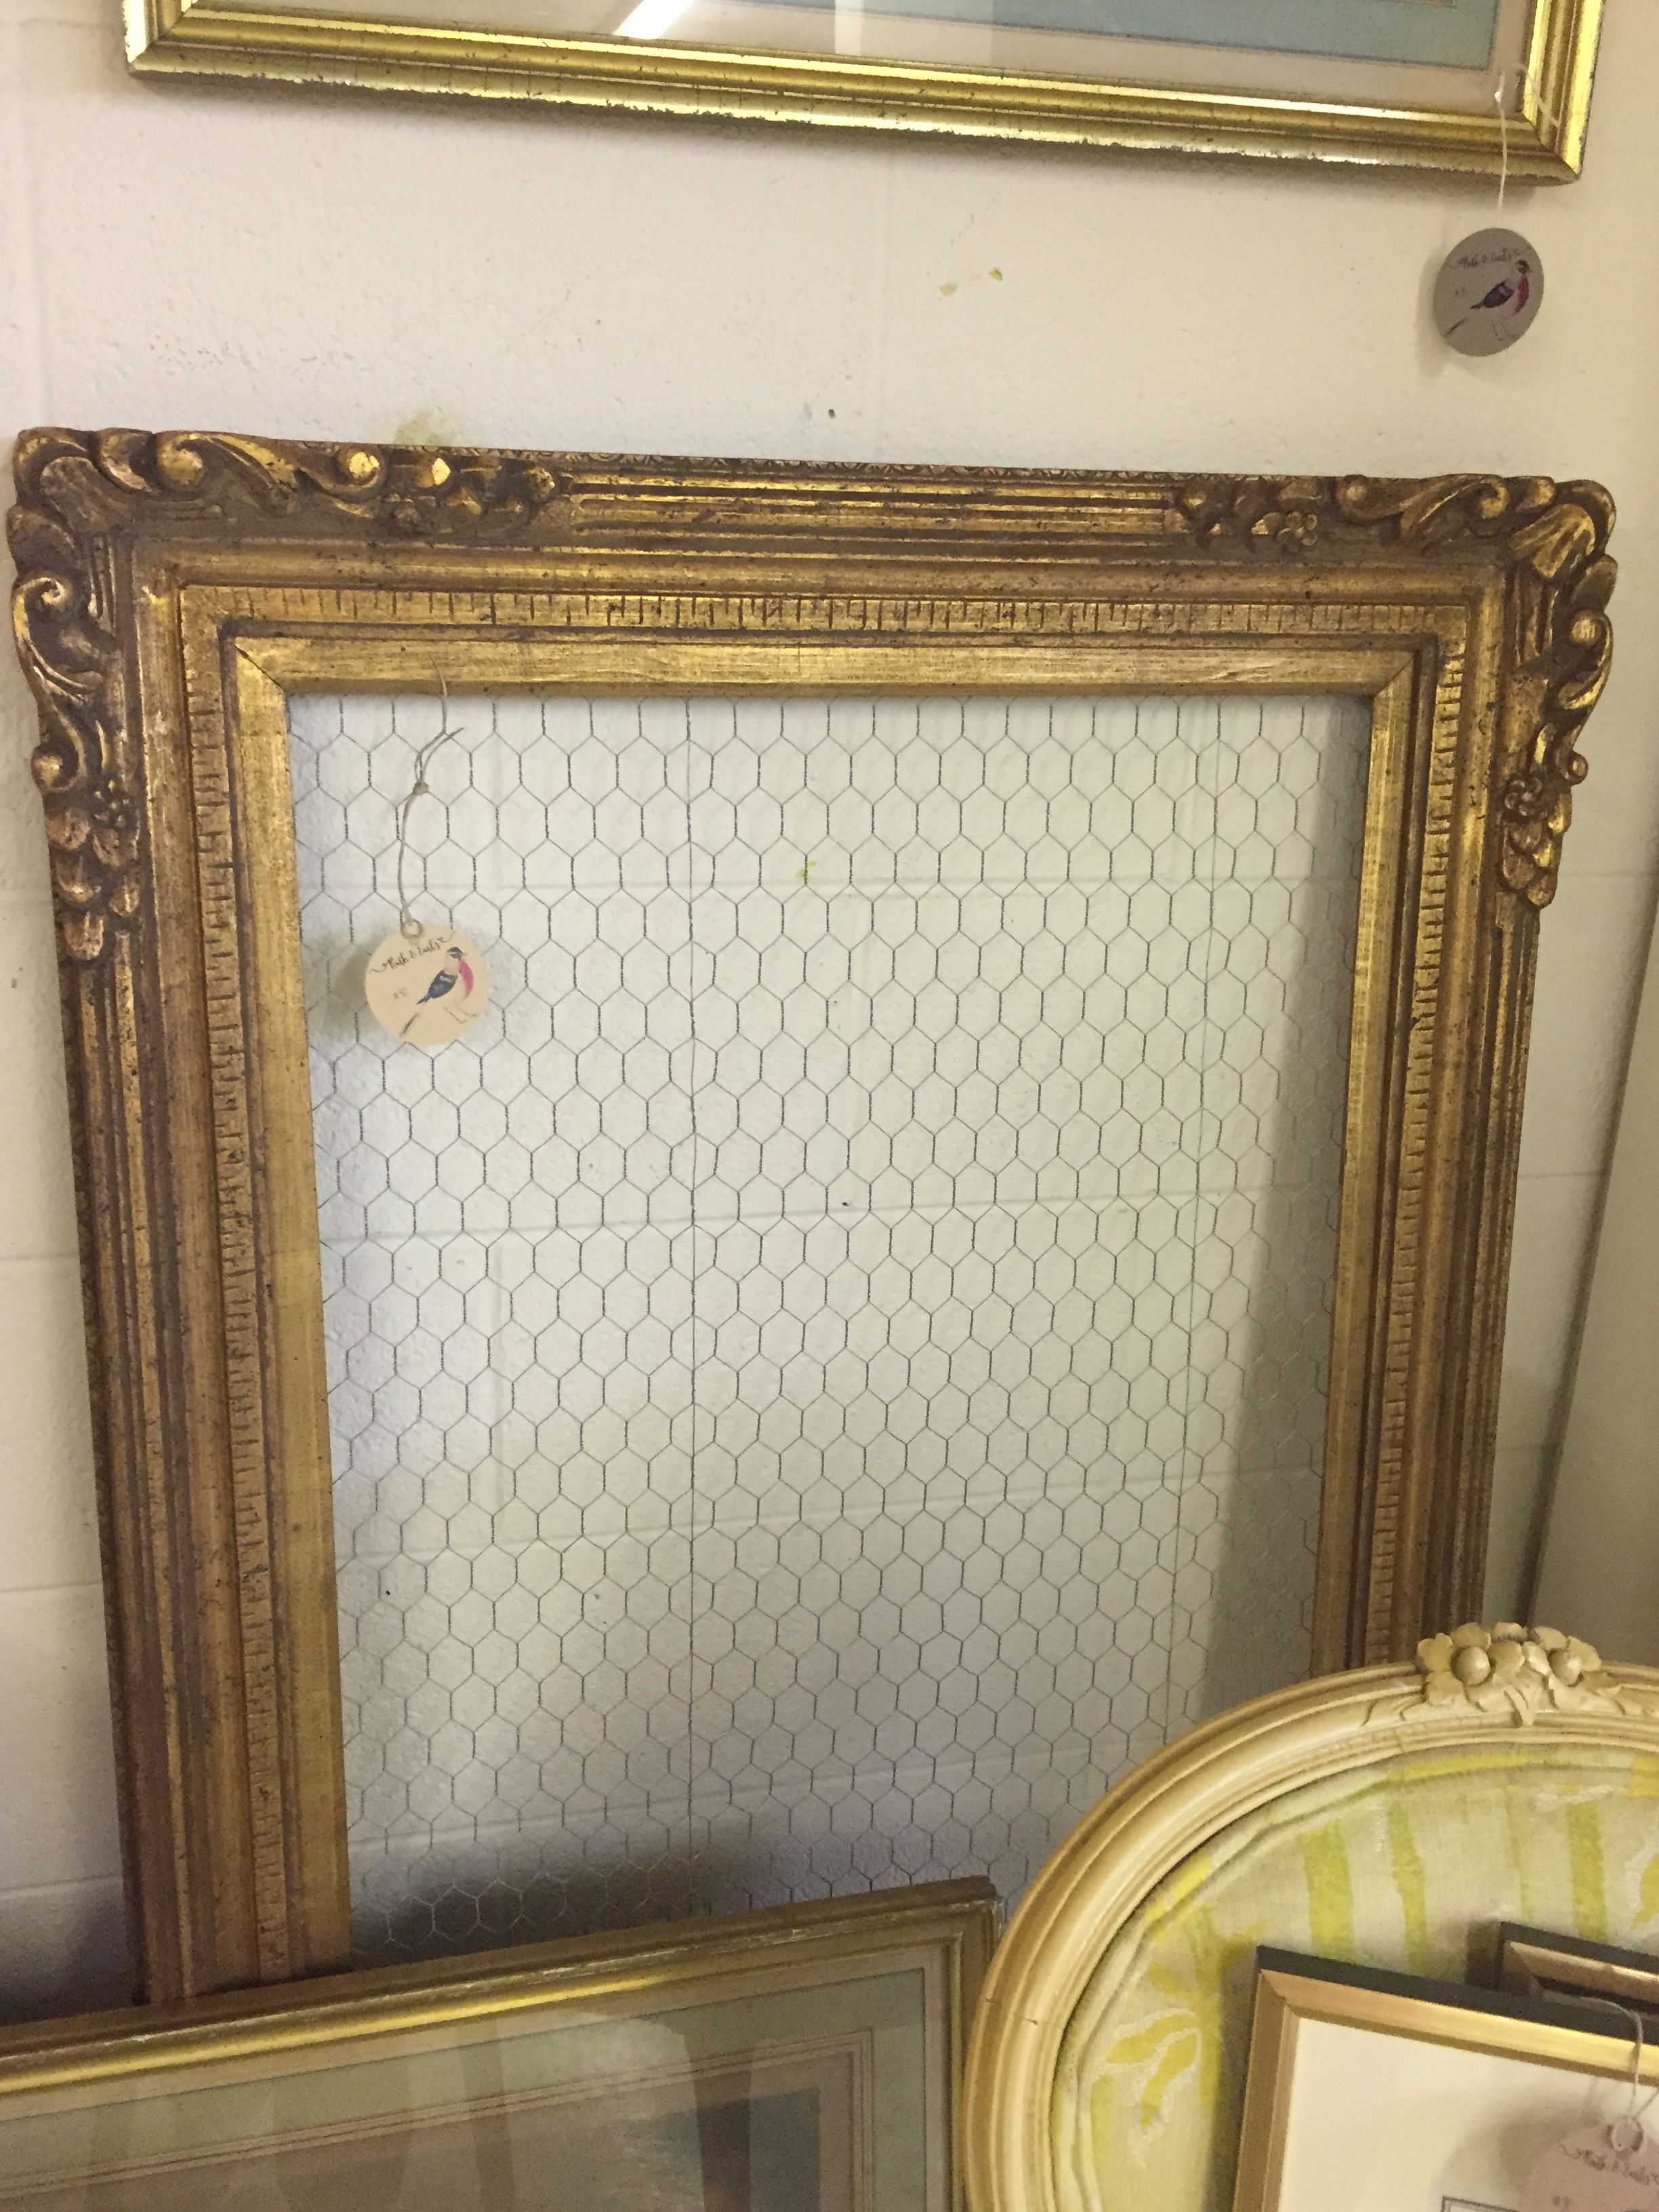 2\'x4\' antique gold frame with chicken wire. Jewelry hanger or memo ...